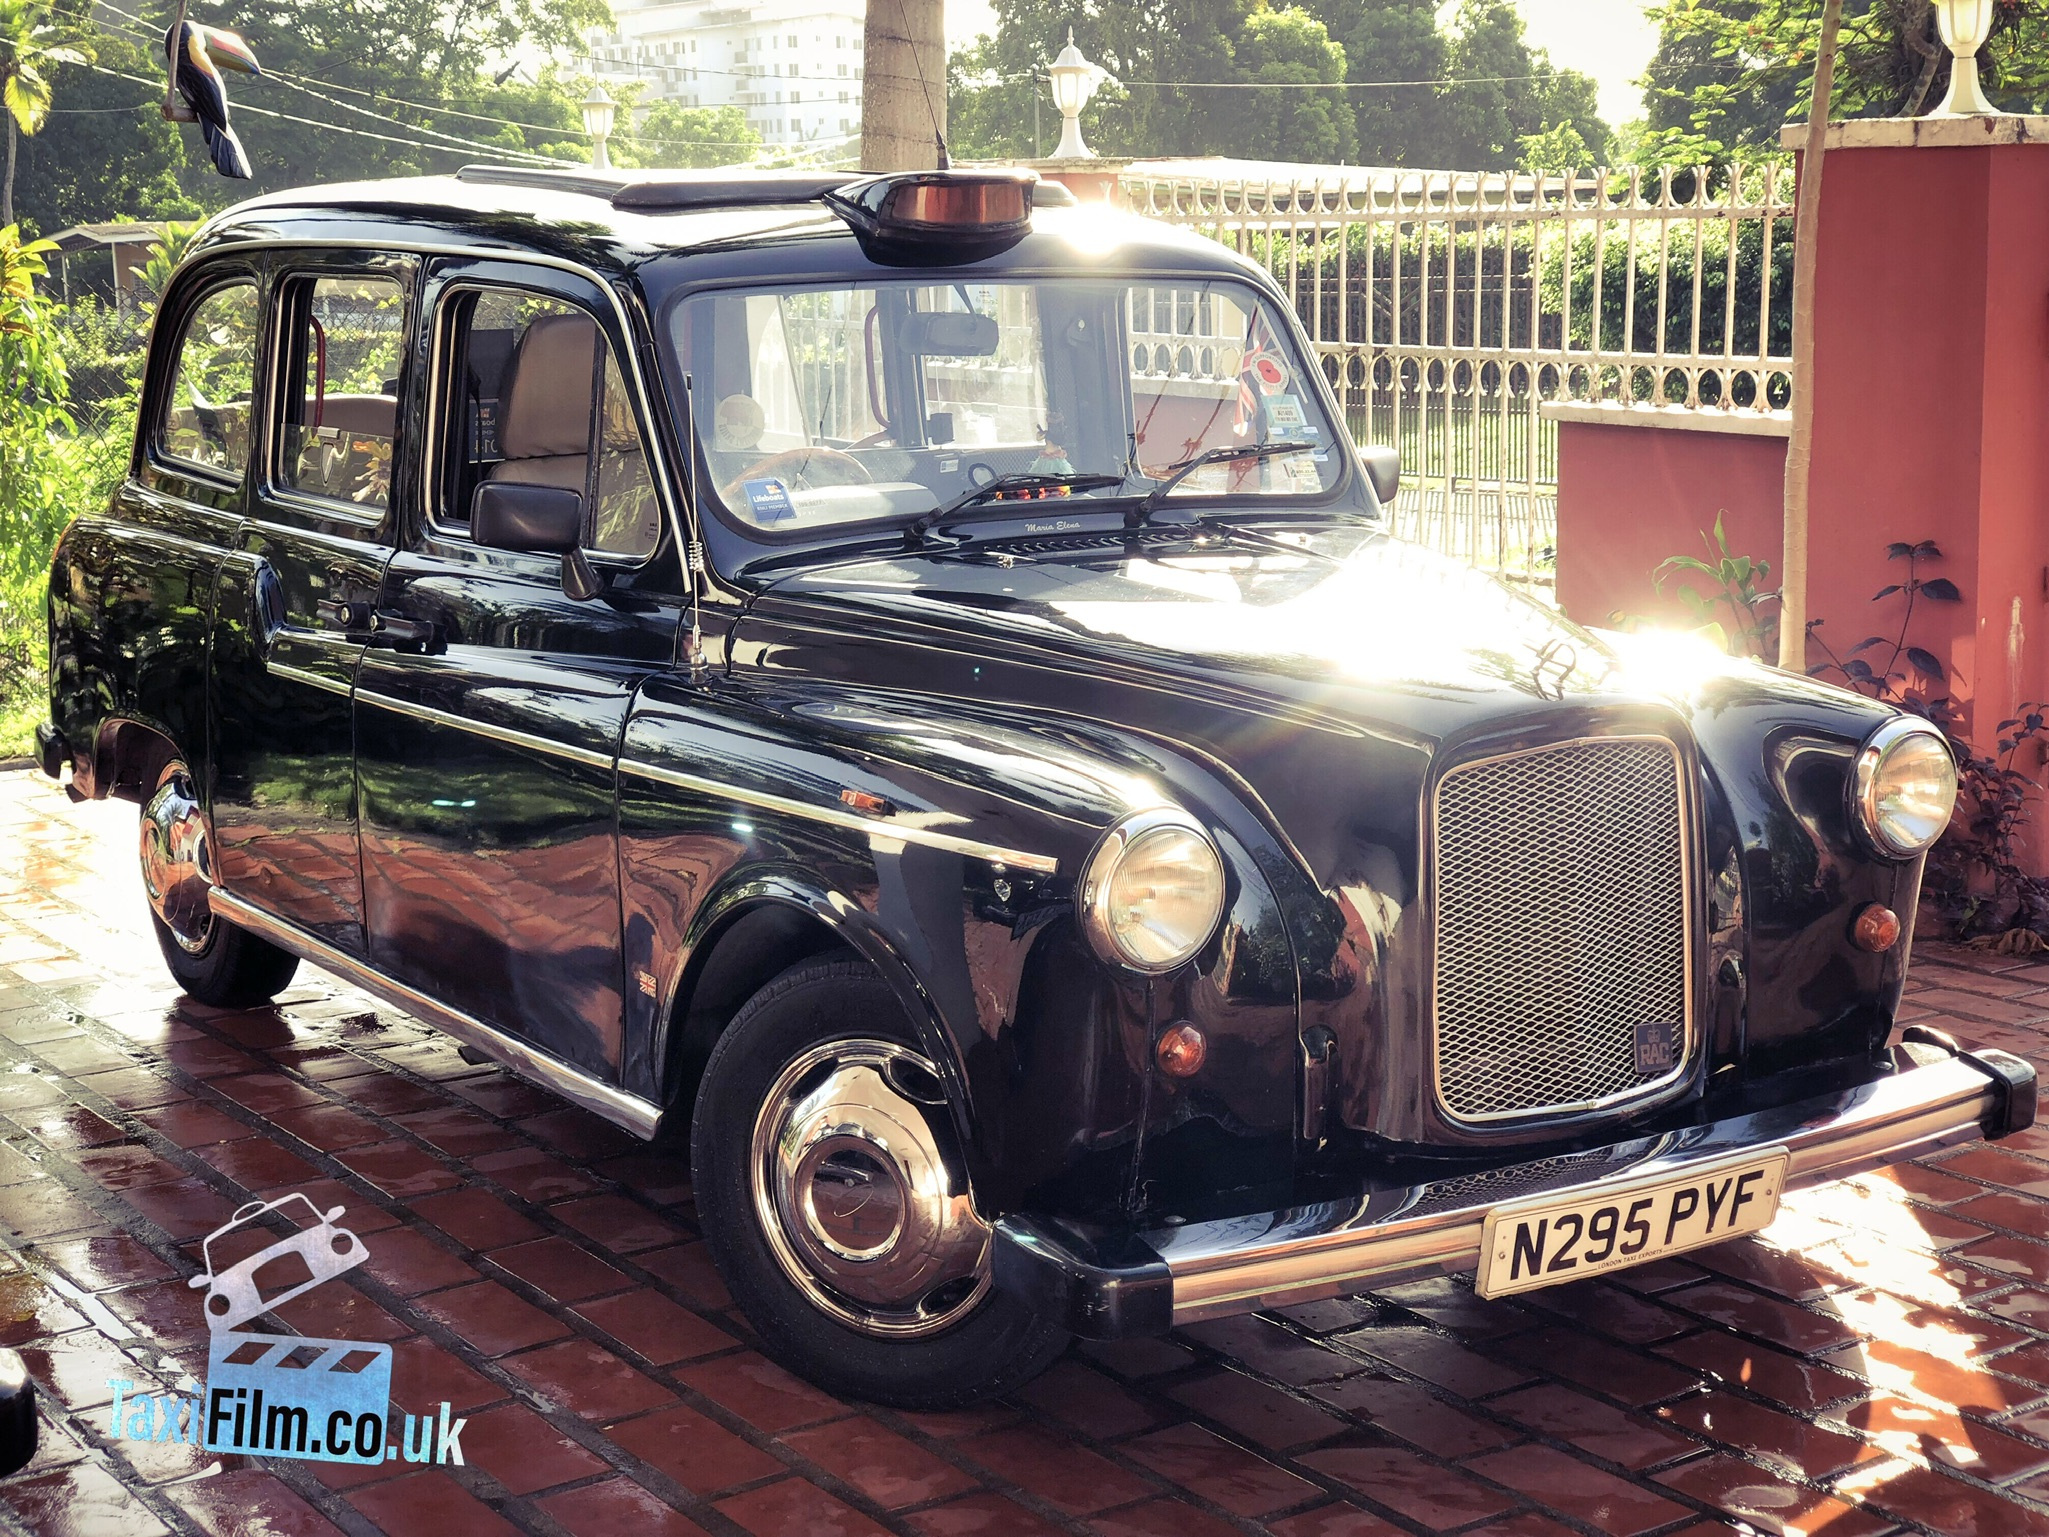 Black Fairway Taxi 1996, Panama ref PAN003